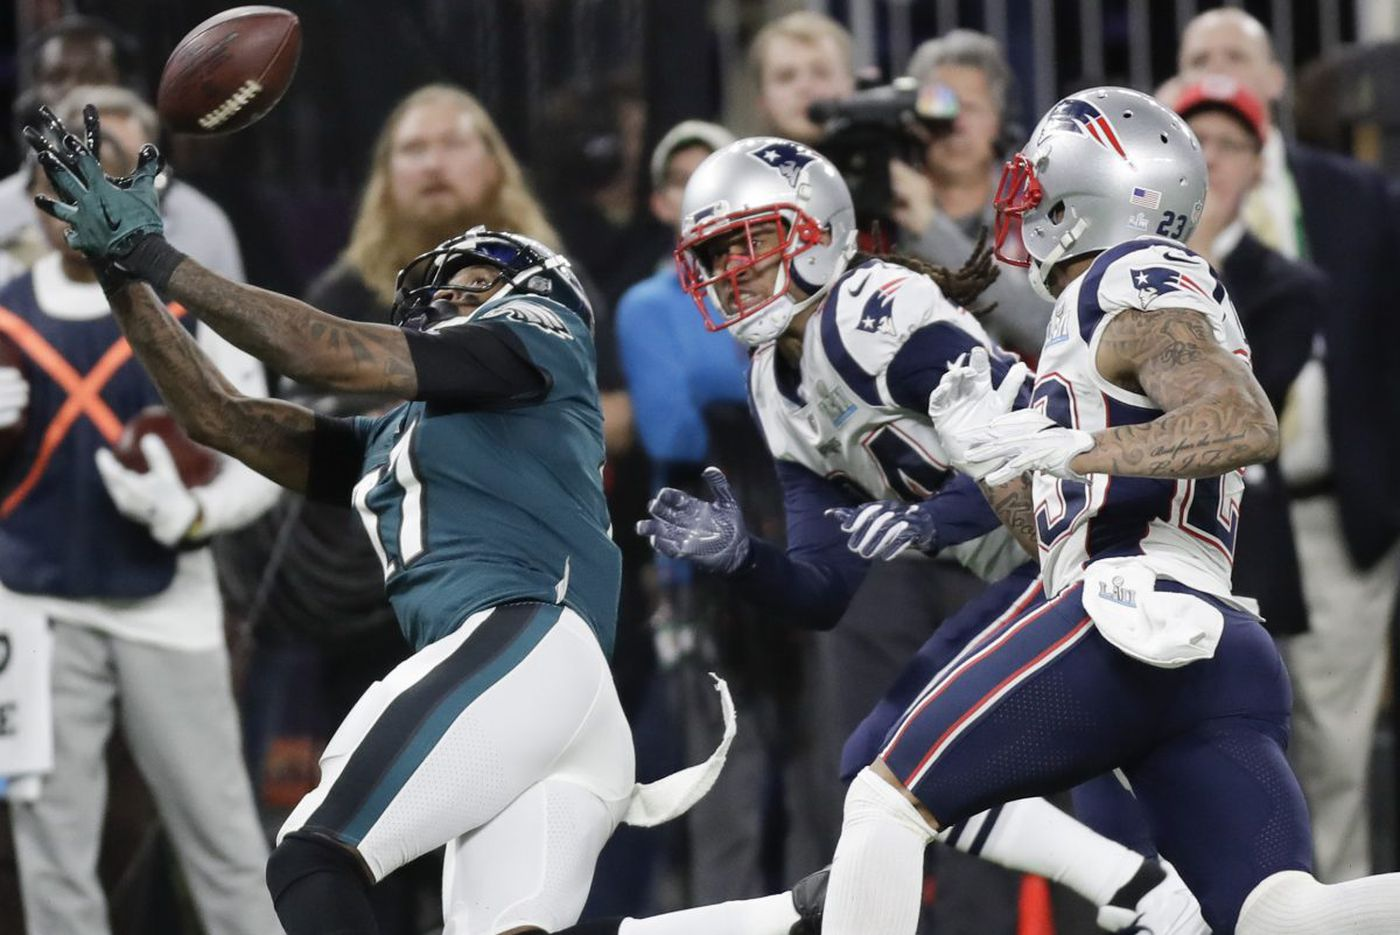 Eagles' Alshon Jeffery played with torn rotator cuff; surgery could sideline him through preseason